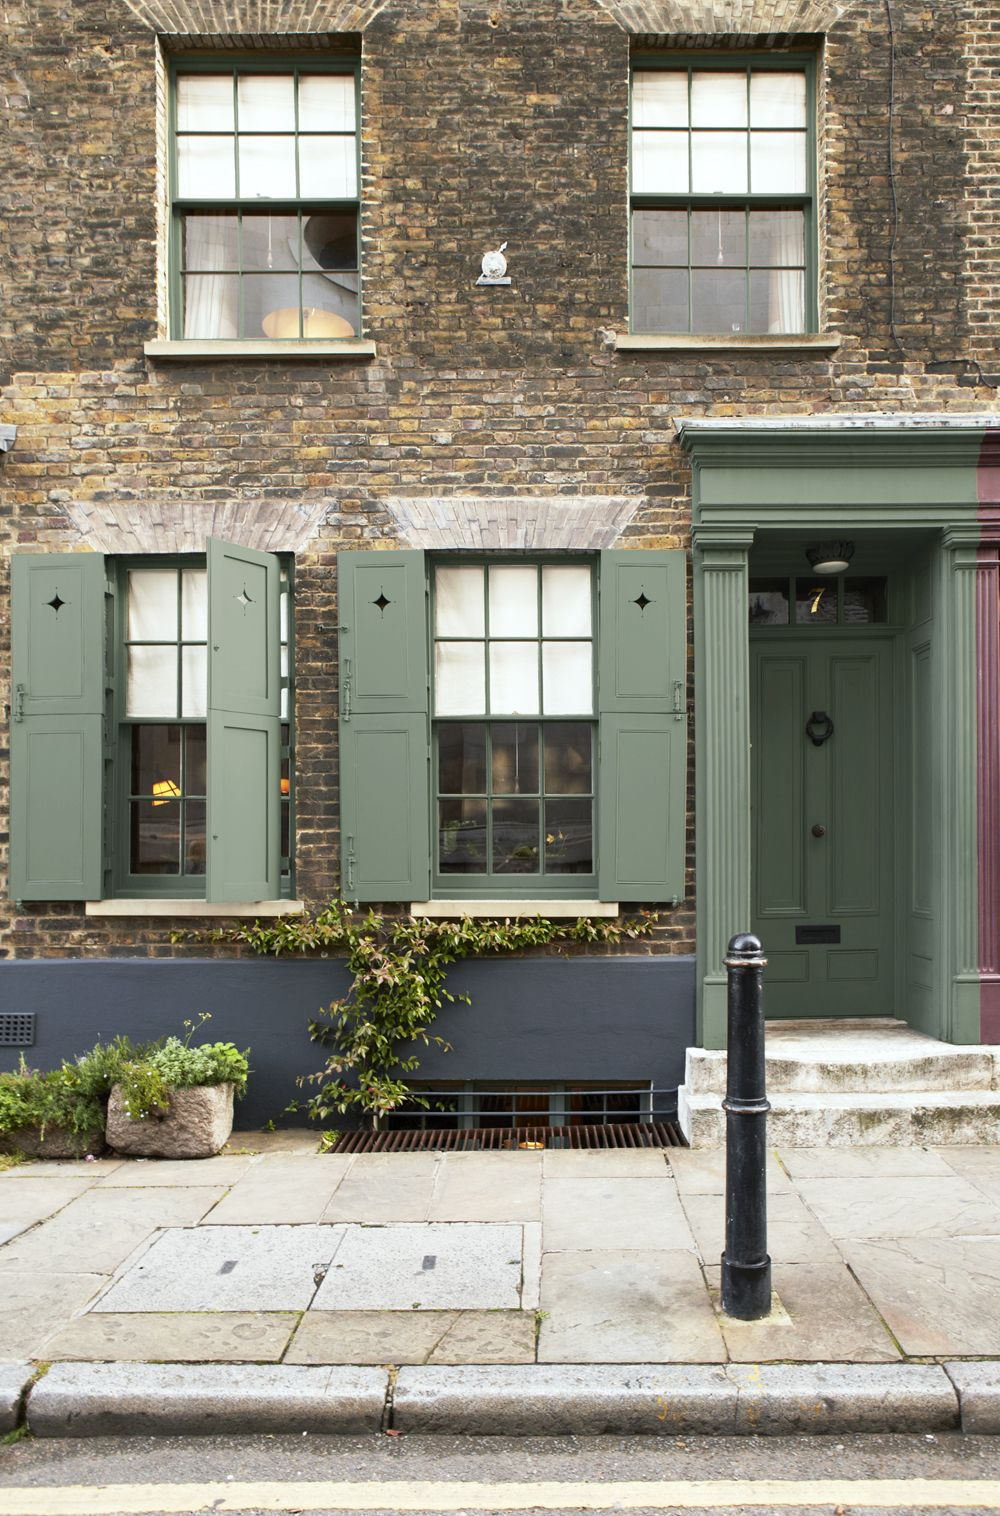 Exterior Woodwork And Door Painted In Farrow Ball Green Smoke Image From Decorating With Colour